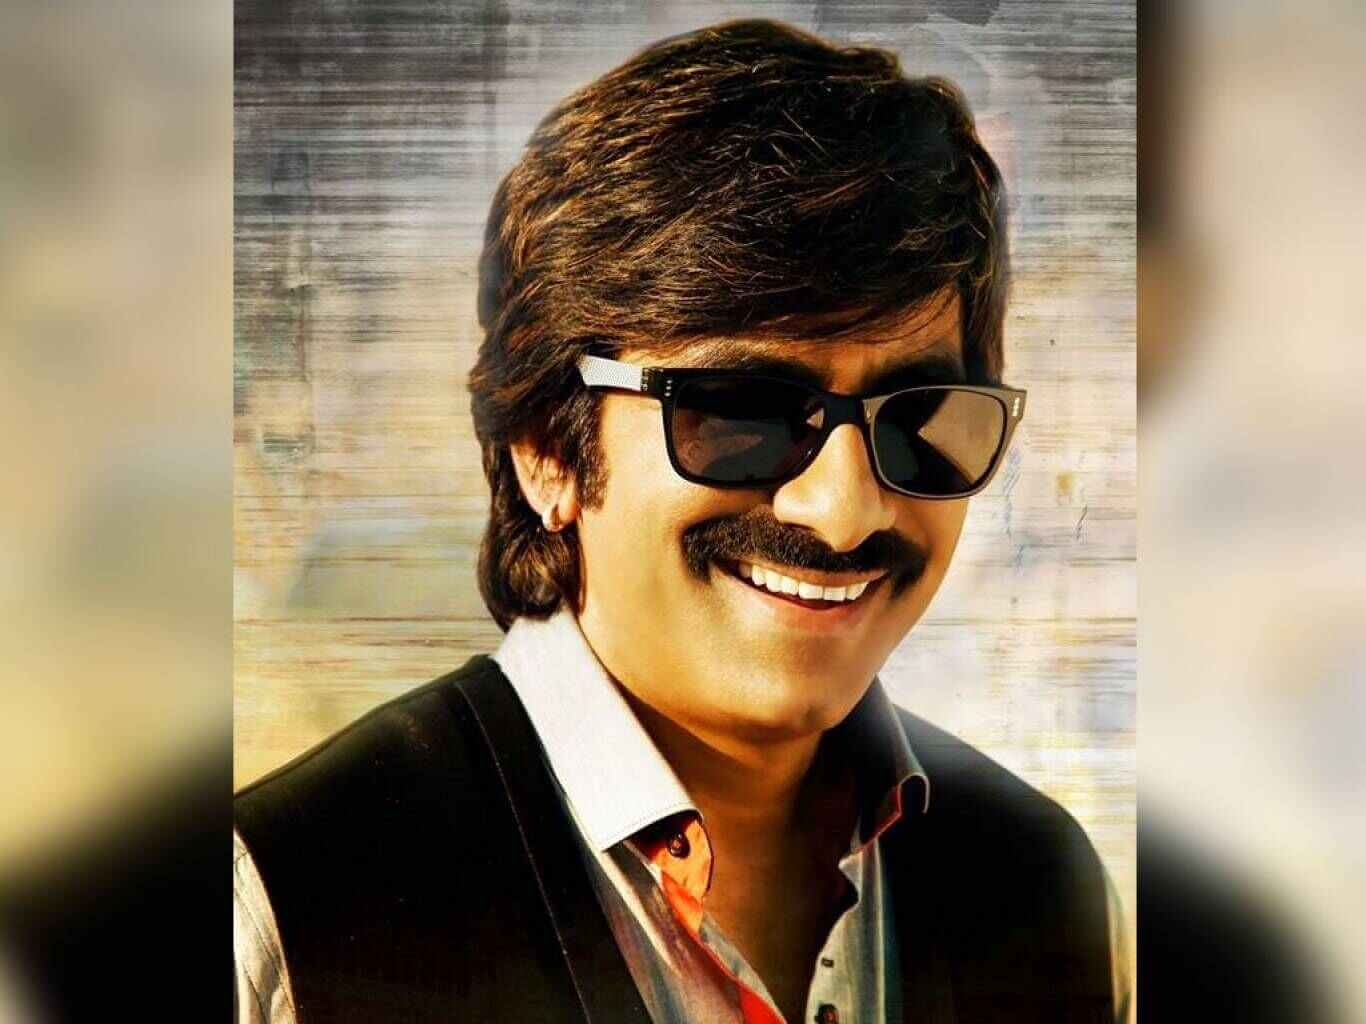 Ravi Teja Movie, Photos(images), Date Of Birth, Family, Brother, Height, Biography, Net Worth, Age, Wife, Details, Education, Instagram, Twitter, Wiki, Imdb, Facebook, Hairstyle, Youtube (55)